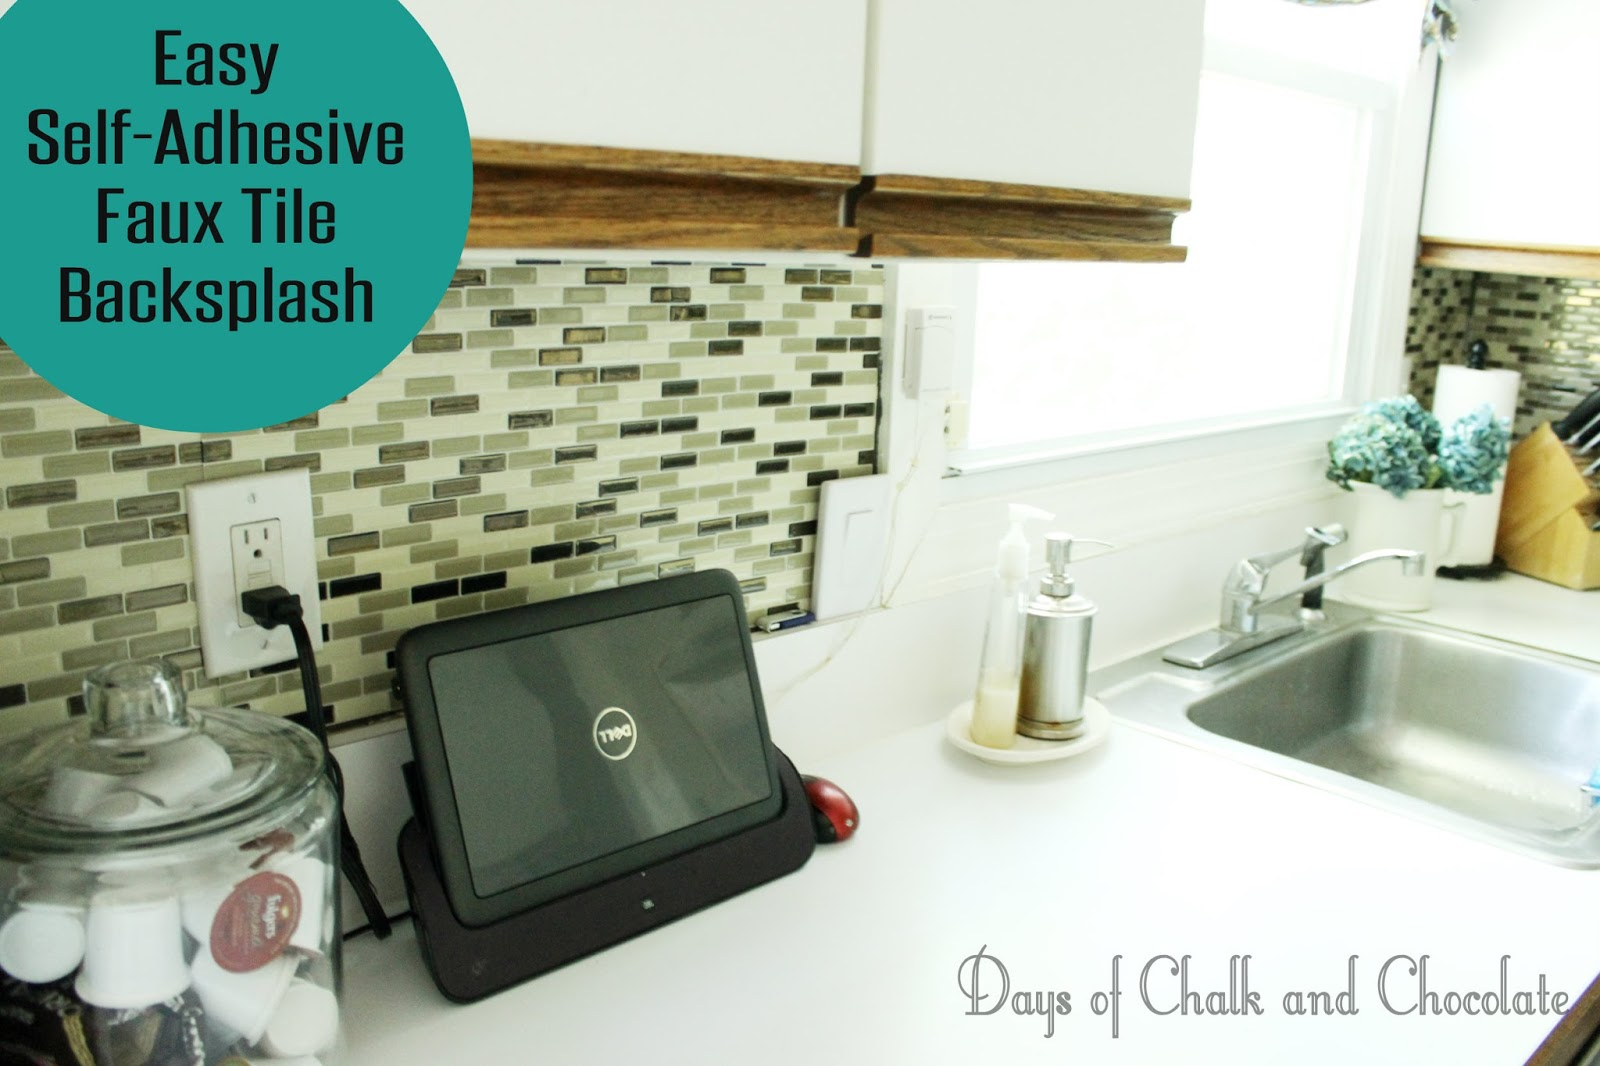 Easy DIY SelfAdhesive Faux Tile BacksplashDays of Chalk and